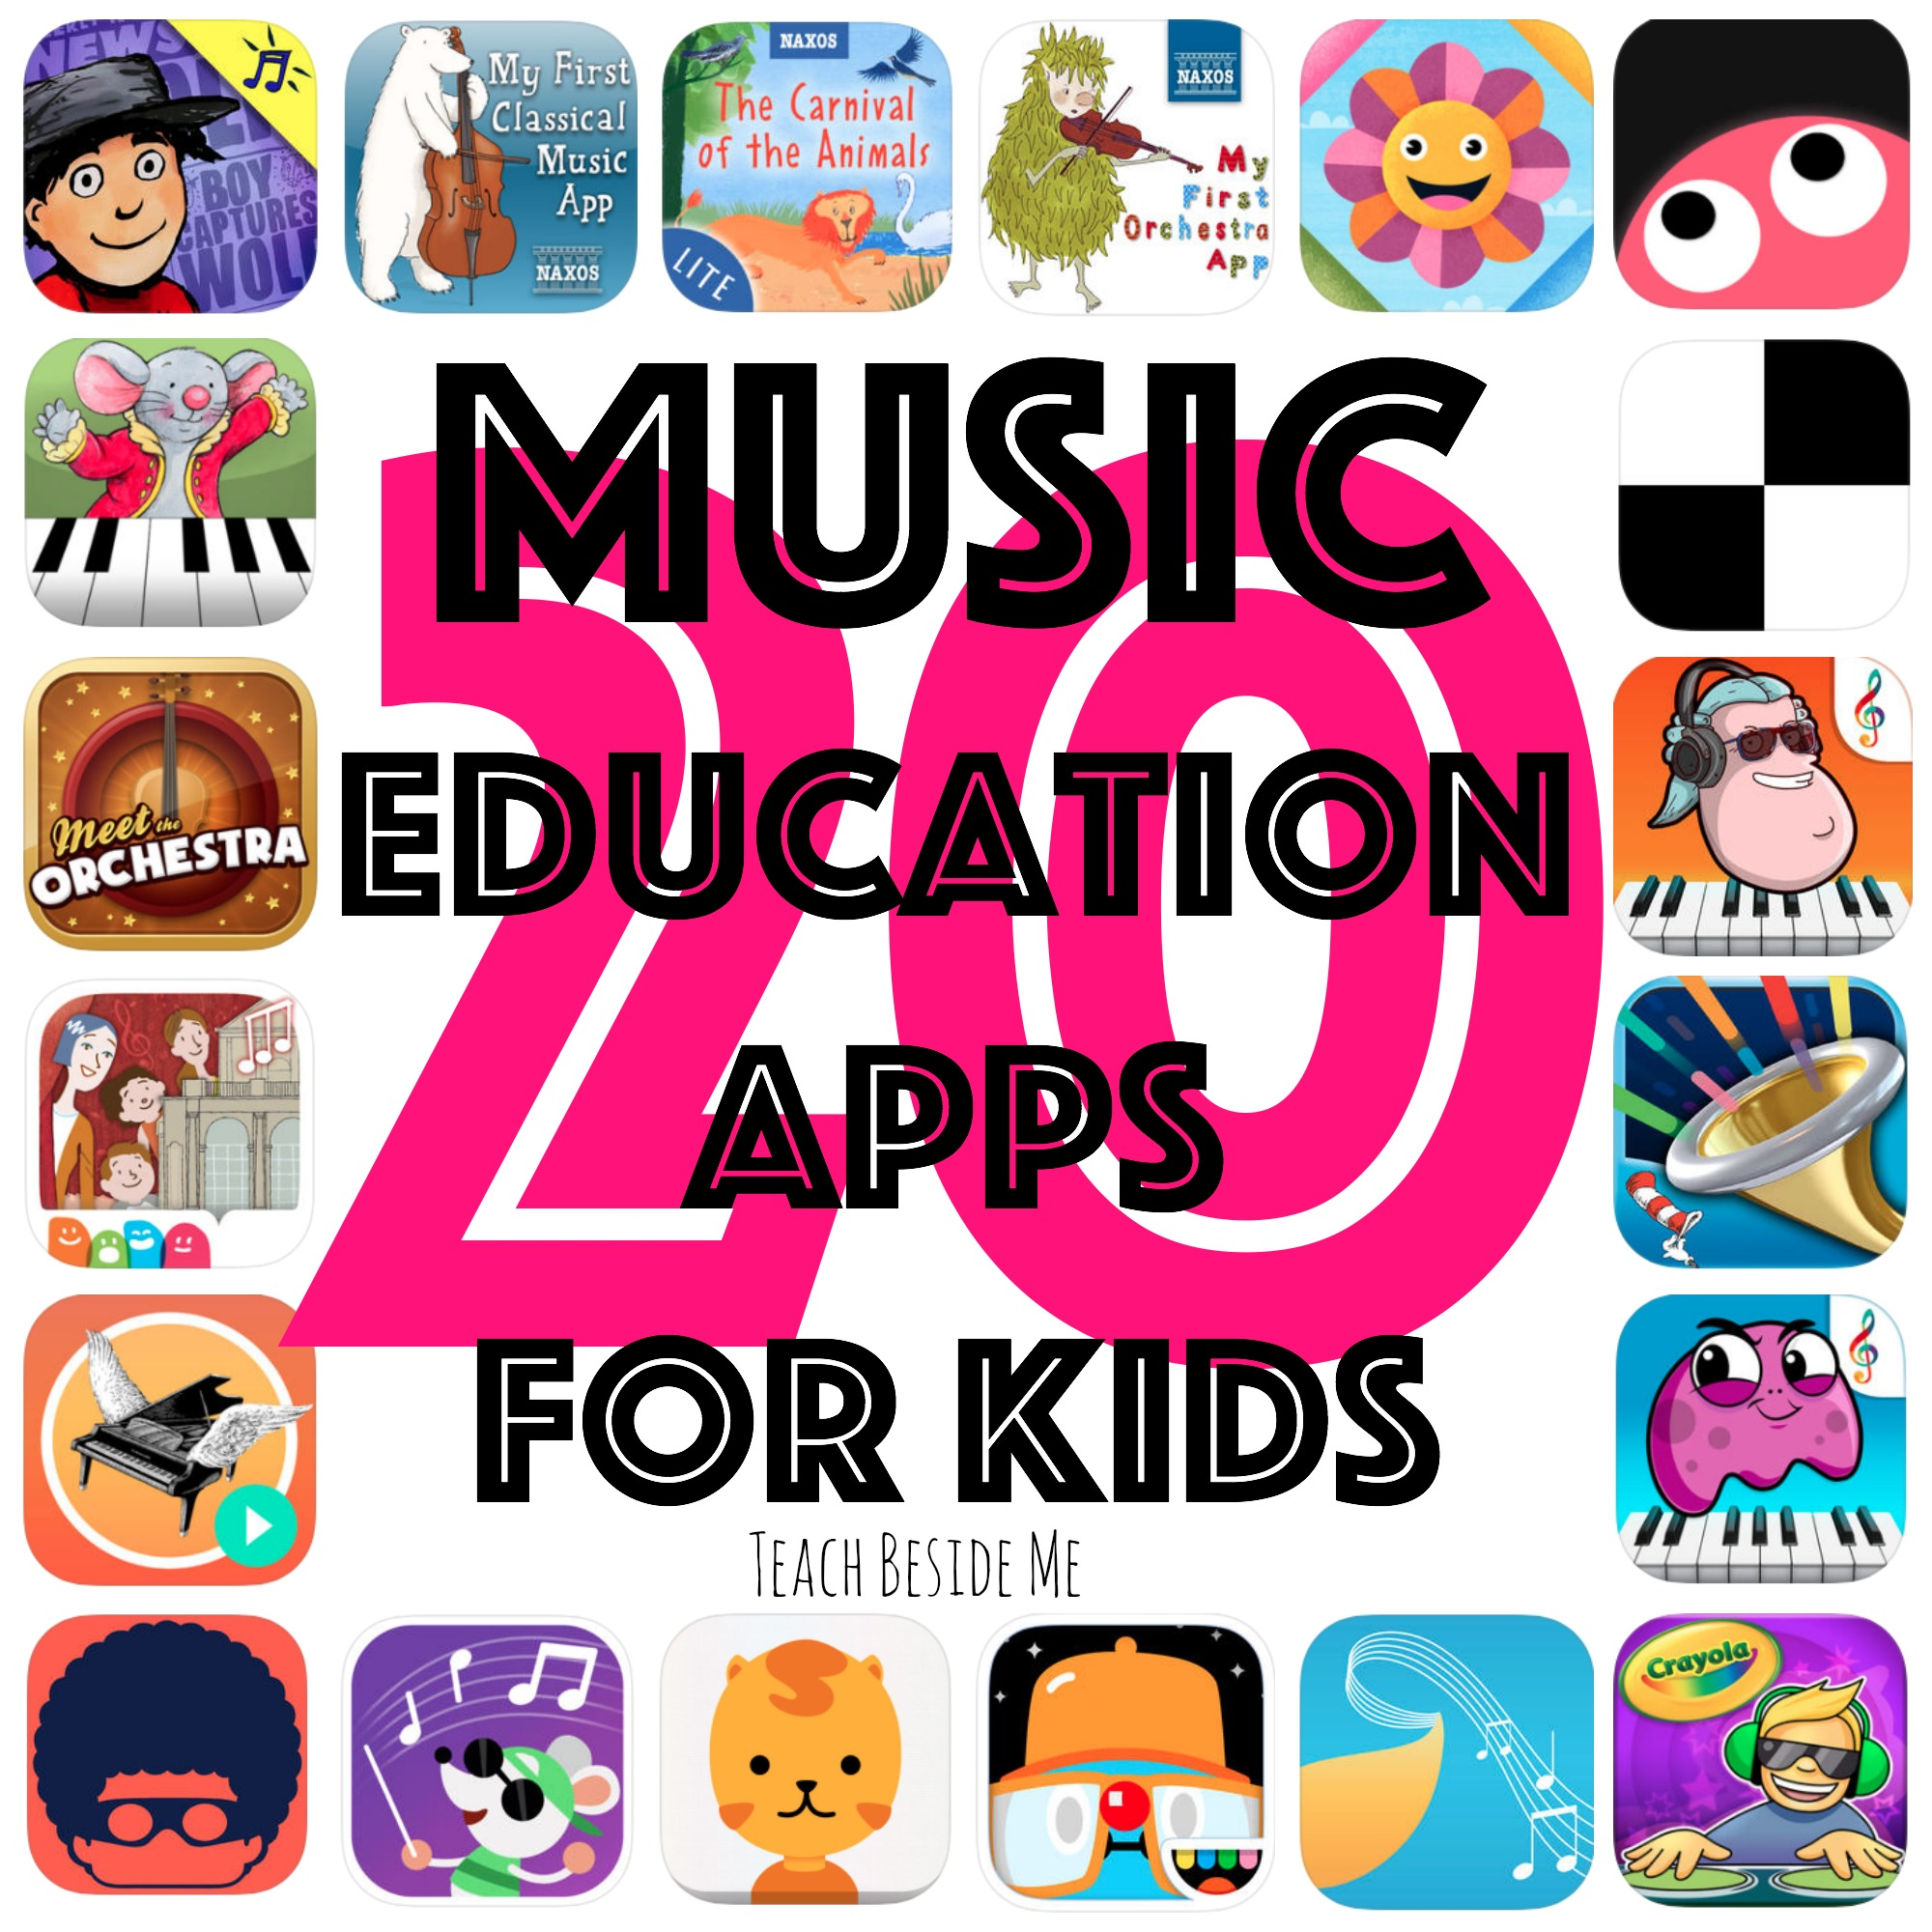 20 Music Apps for Kids